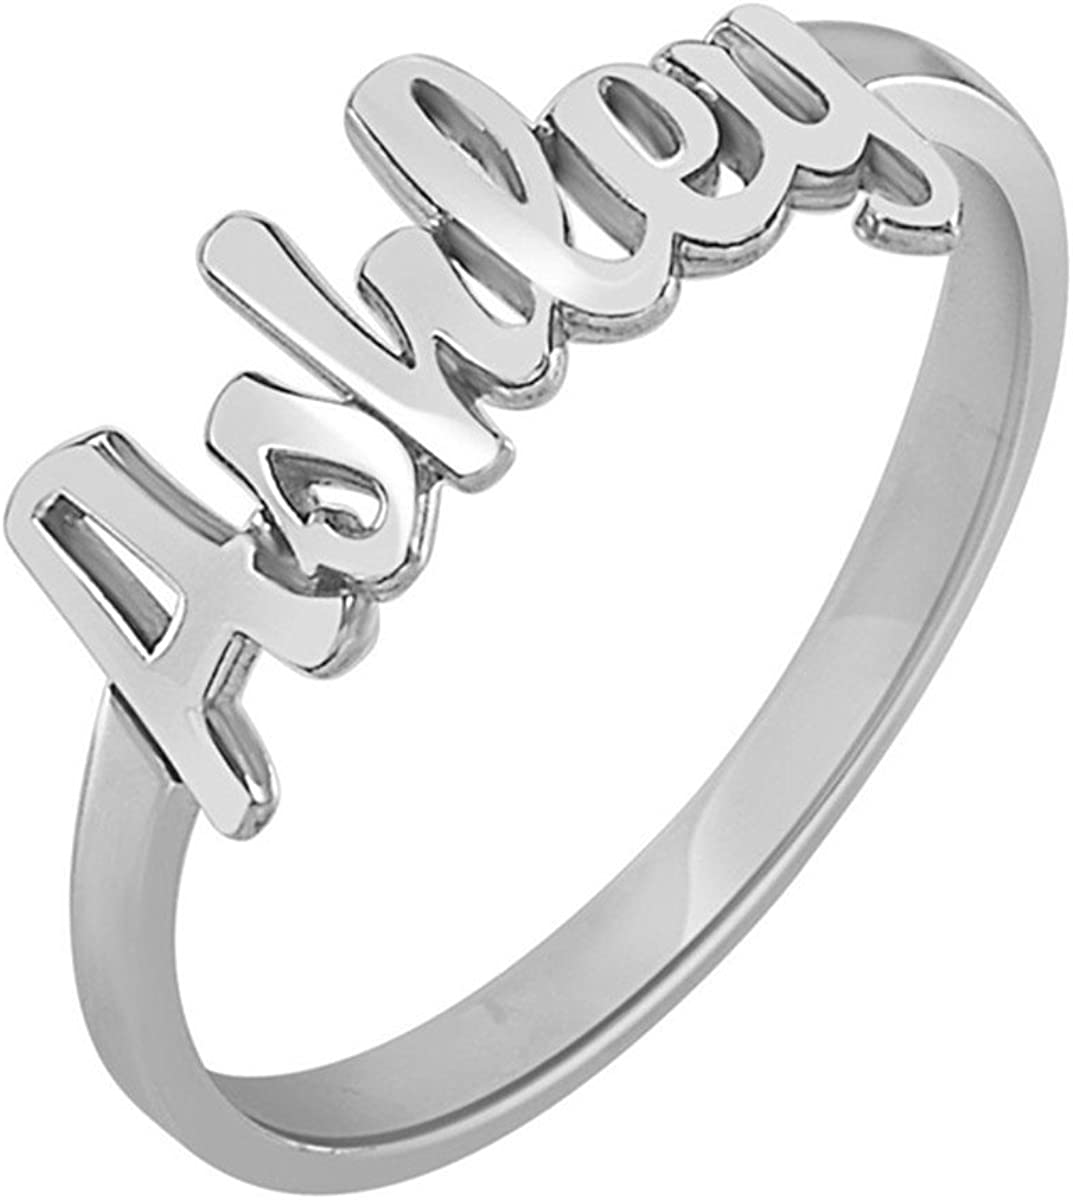 promise ring custom ring ENGRAVED RING everyday ring personalized ring name ring boyfriend name ring